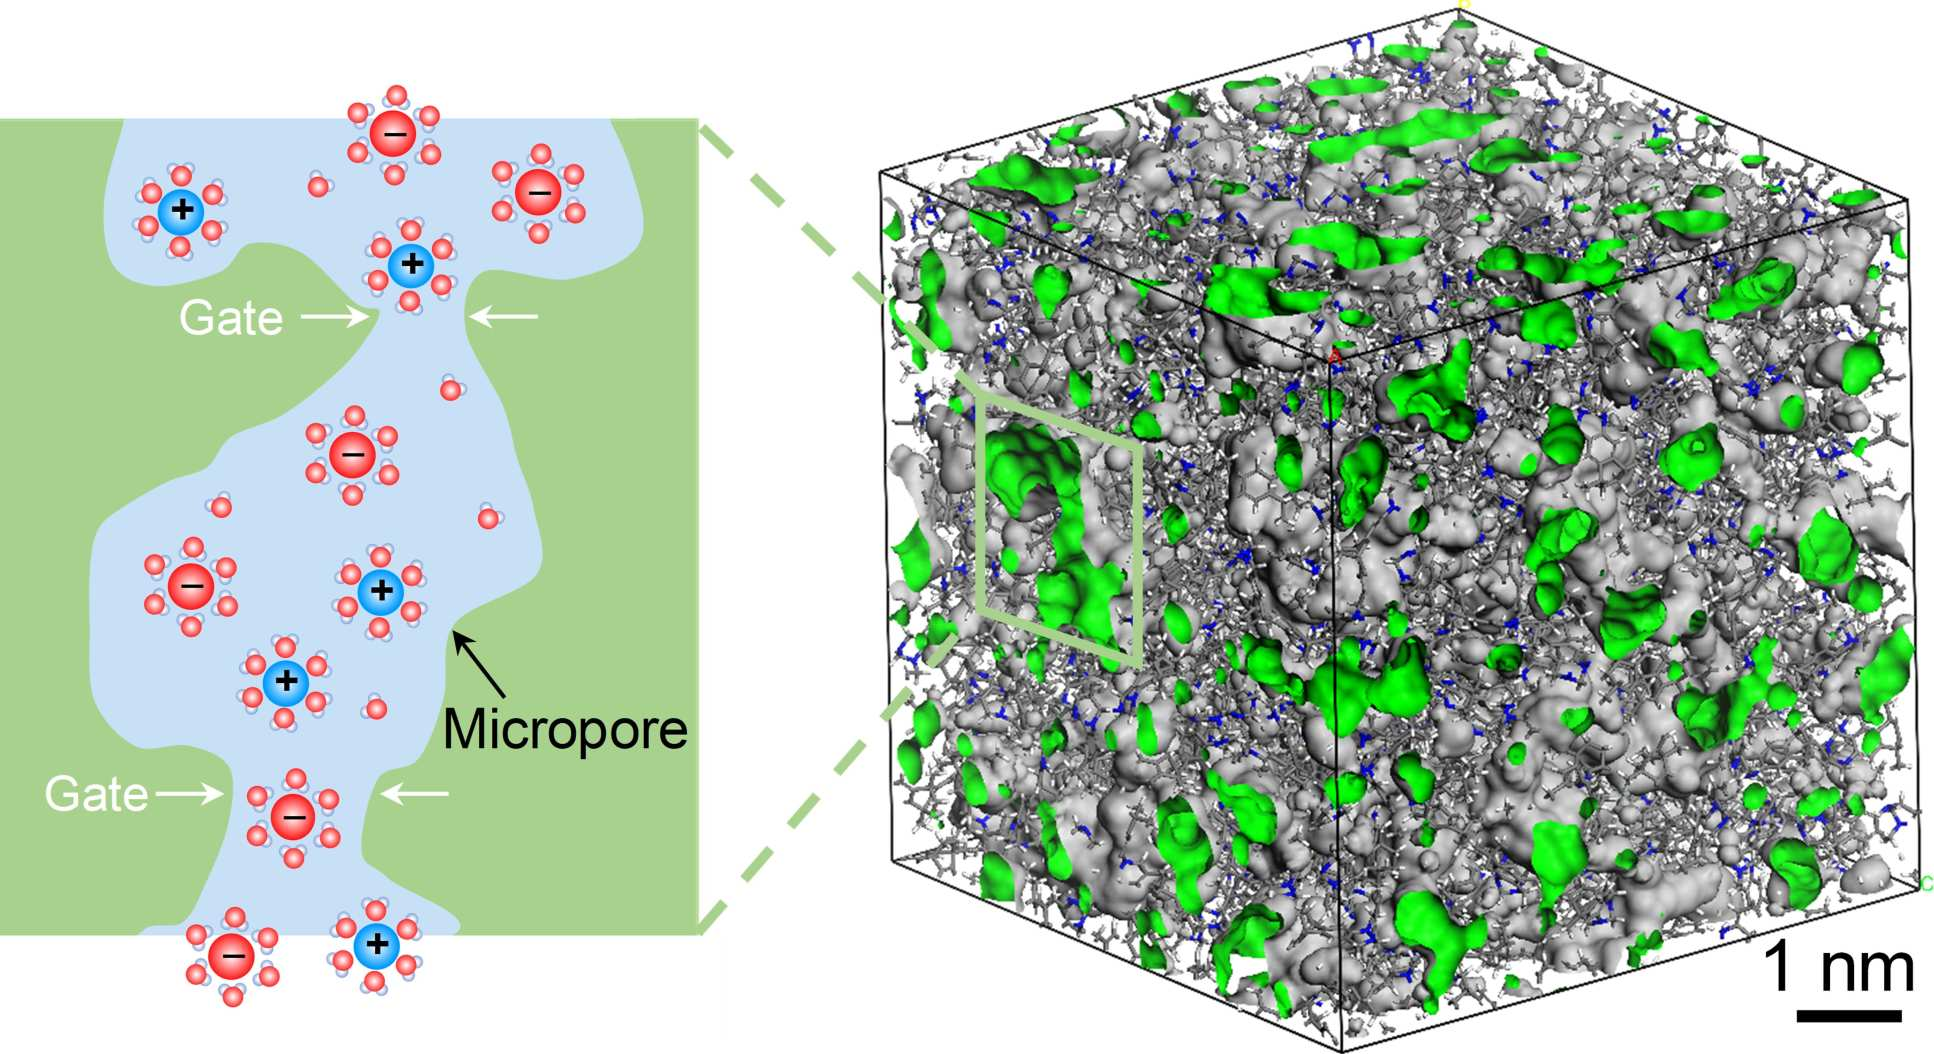 3D image of the membranes and 2D illustration that shows ions passing through 'gates' in the structure